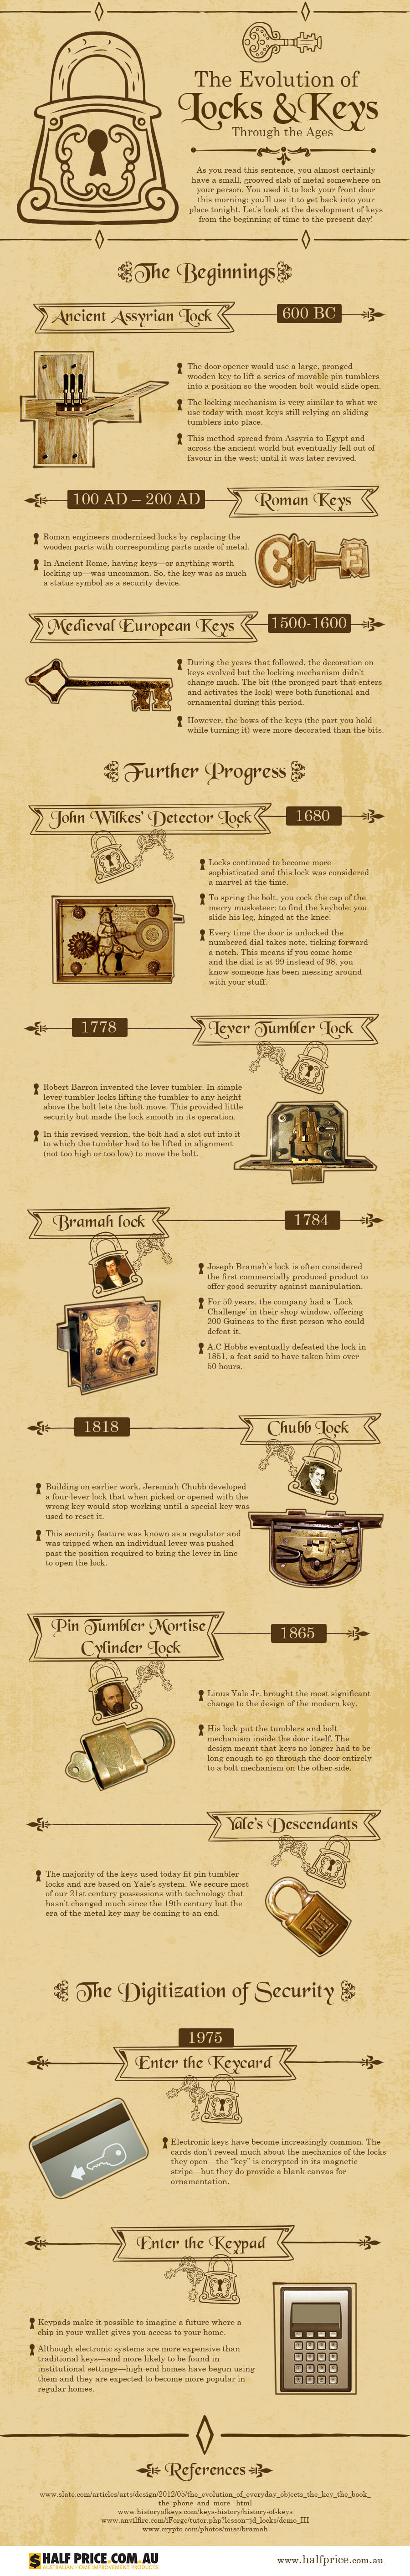 The-Evolution-of-Locks-Keys-Through-the-Ages-infographic-plaza